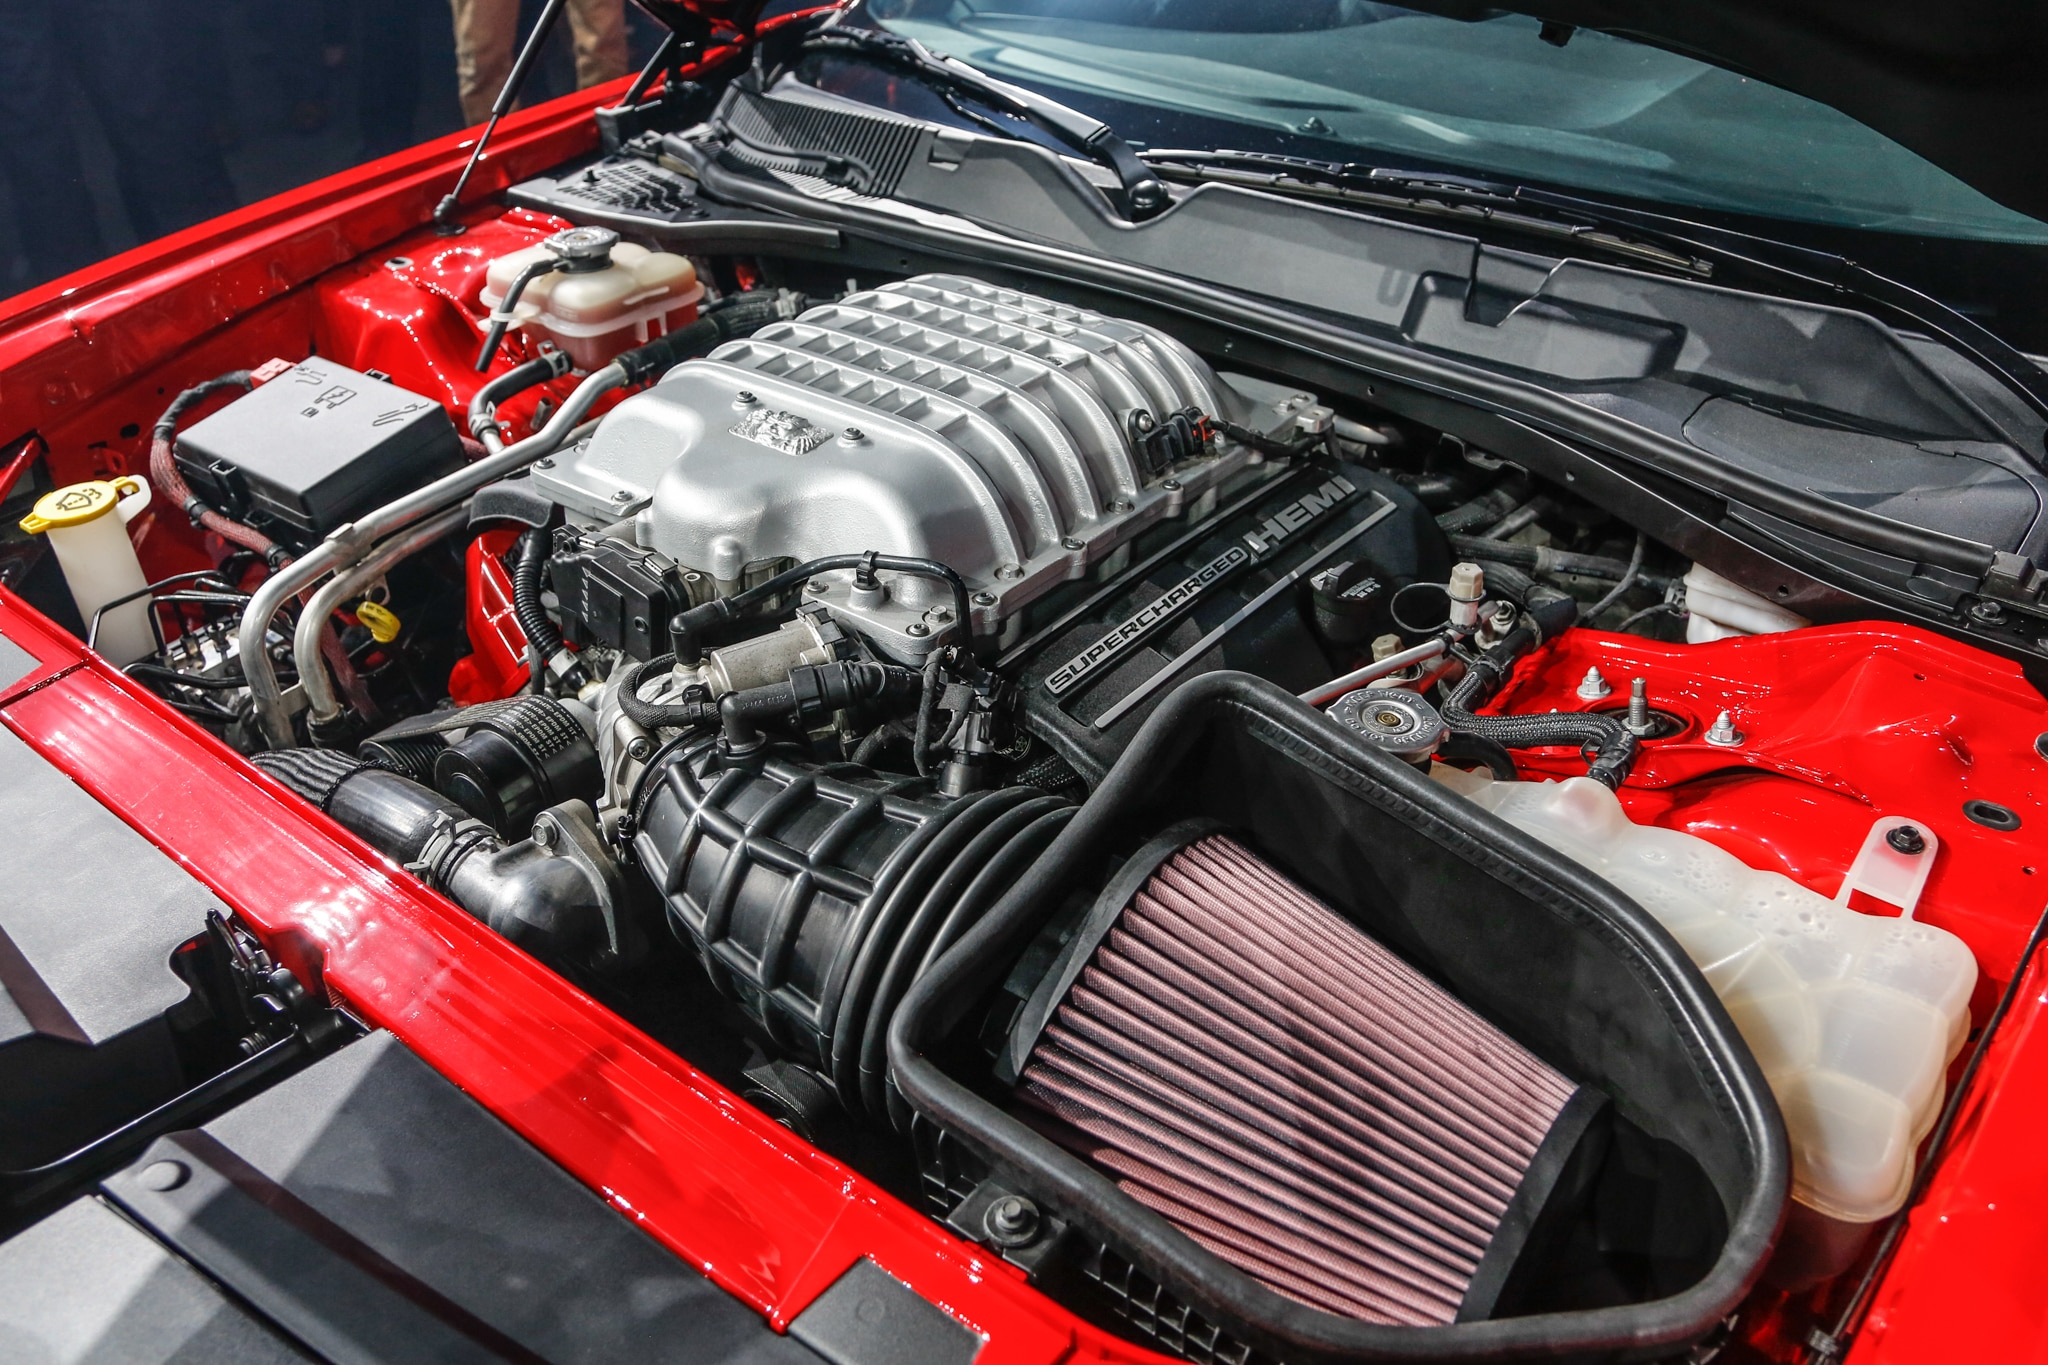 Dodge Challenger Demon Performance Numbers Arent Quite 1974 Wiring Harness Show More